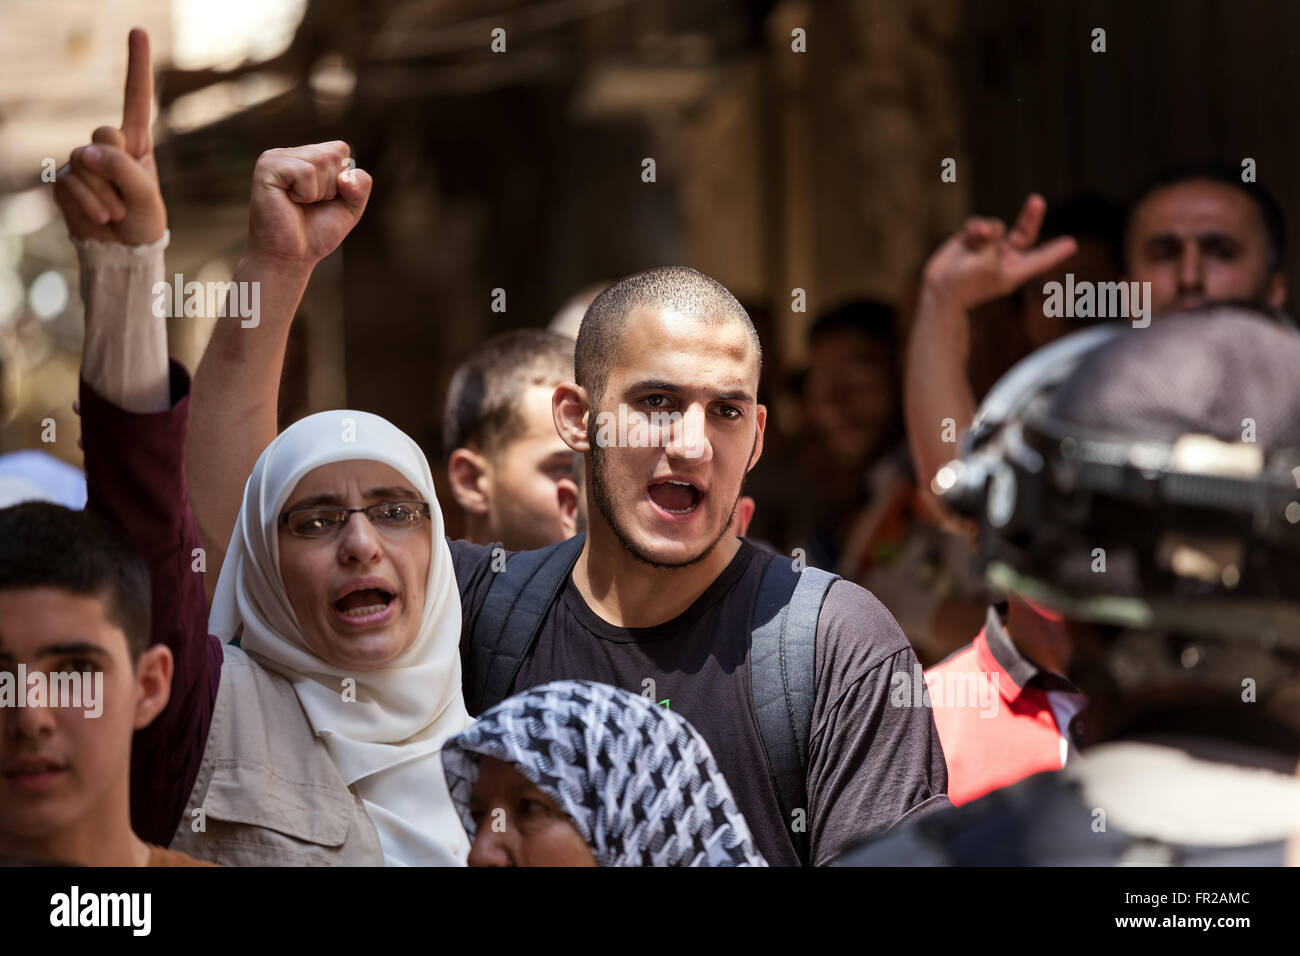 Palestinians in Old City of Jerusalem protest against ascent of religious jews to Temple Mount. - Stock Image